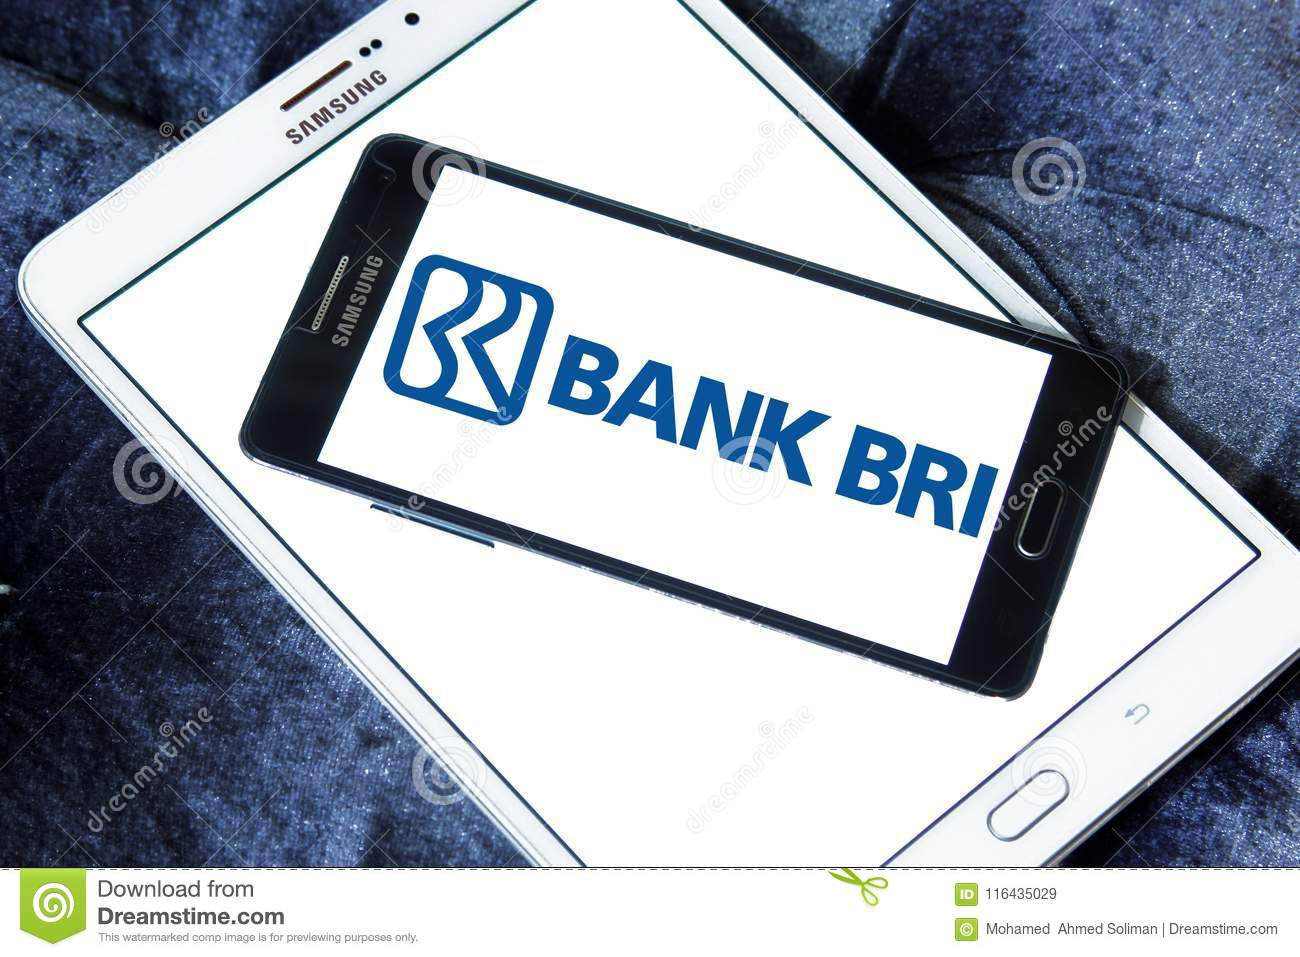 Bank Rakyat Indonesia , Bank BRI, logo